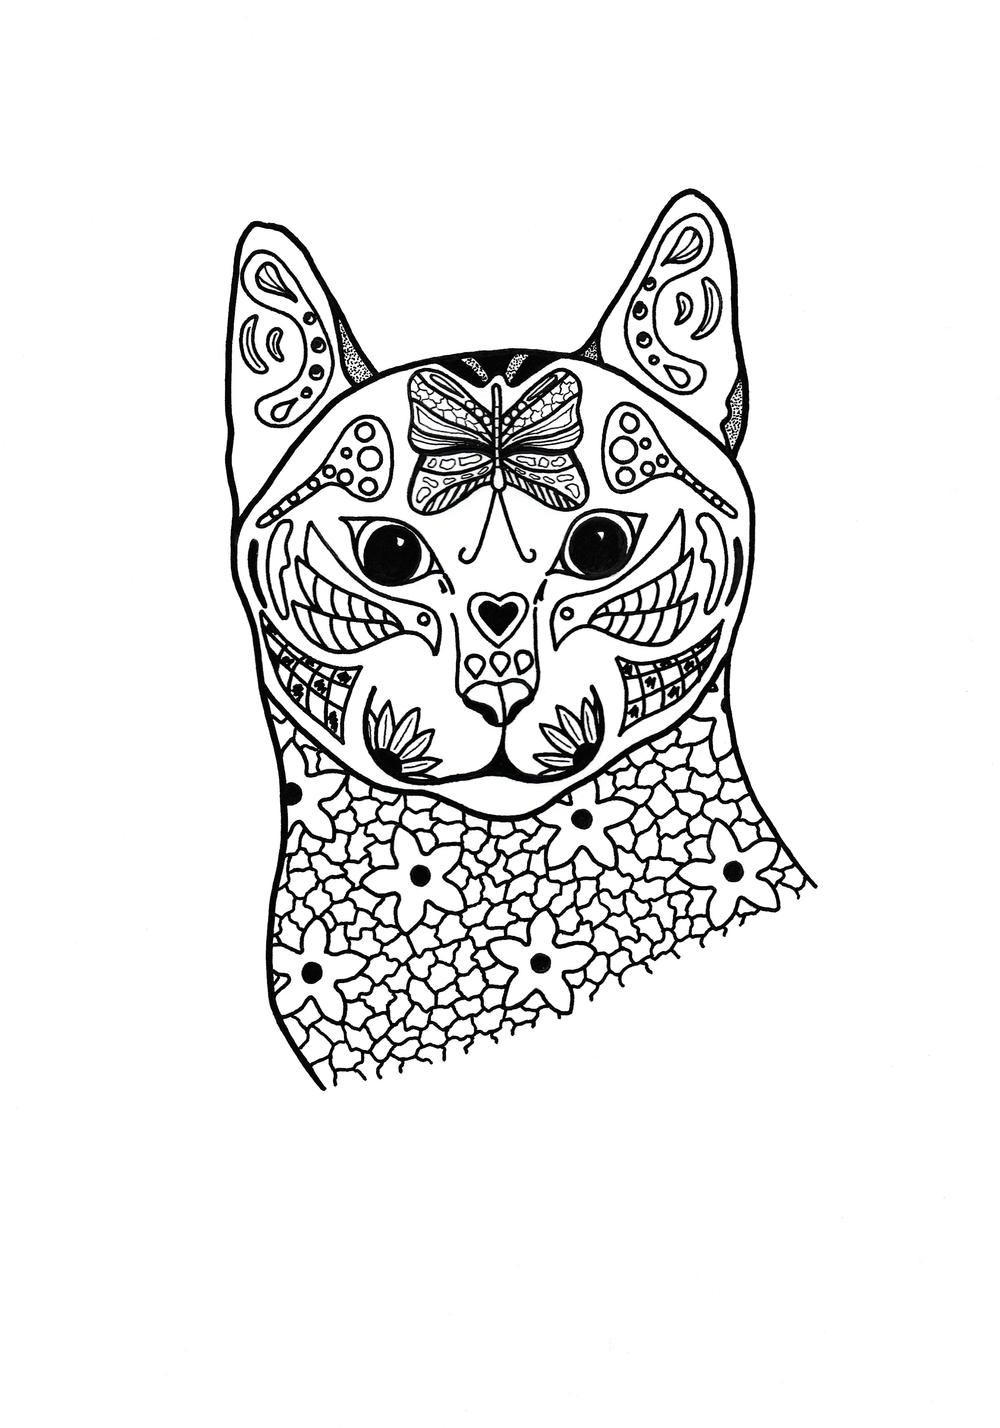 cat colouring pages free printable cat coloring pages for kids cool2bkids cat colouring pages